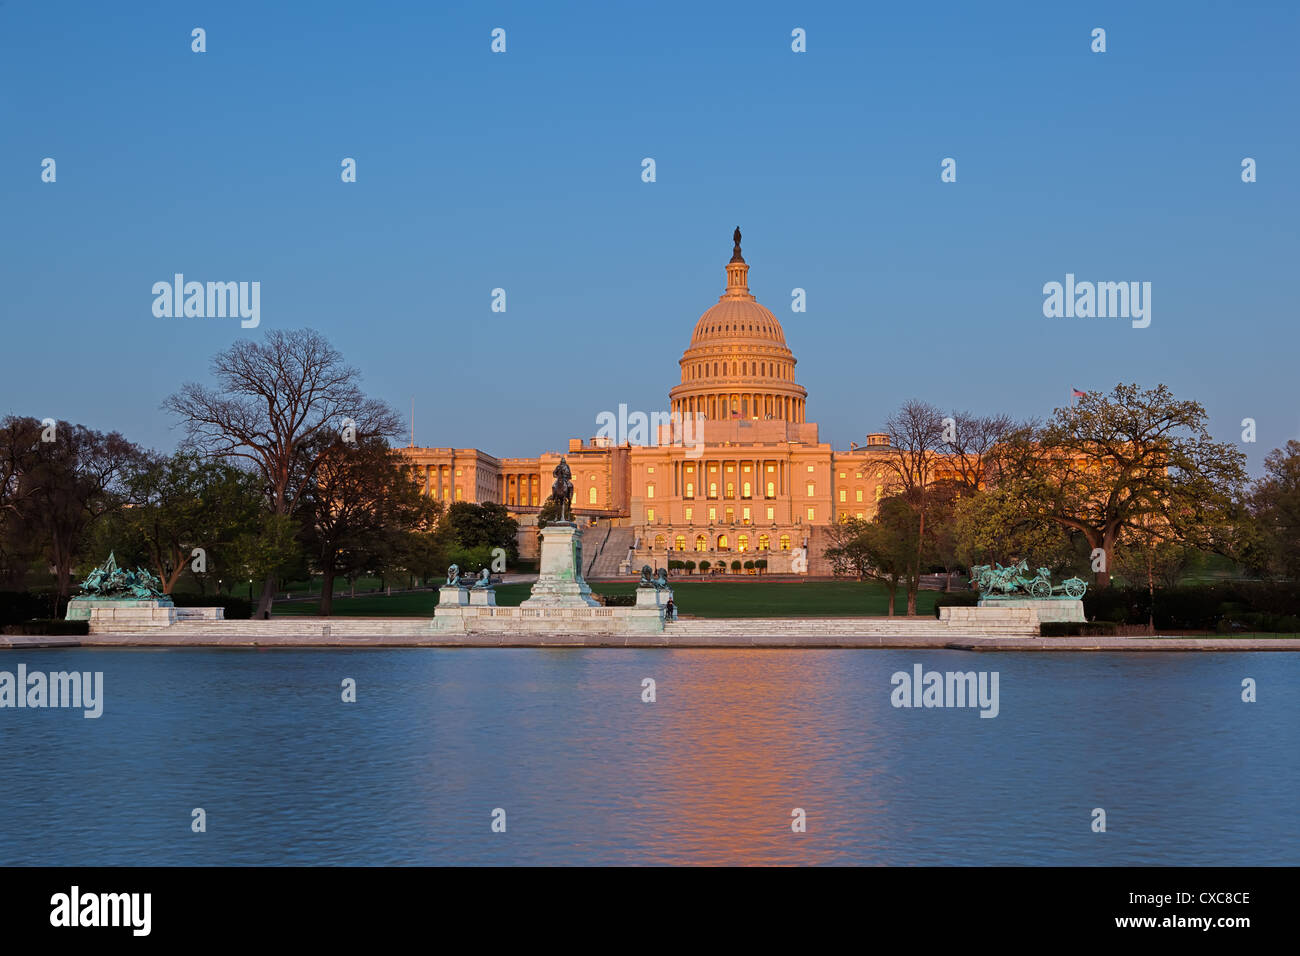 Ulysses S. Grant Memorial and United States Capitol Building showing current renovation work on the dome, Washington - Stock Image